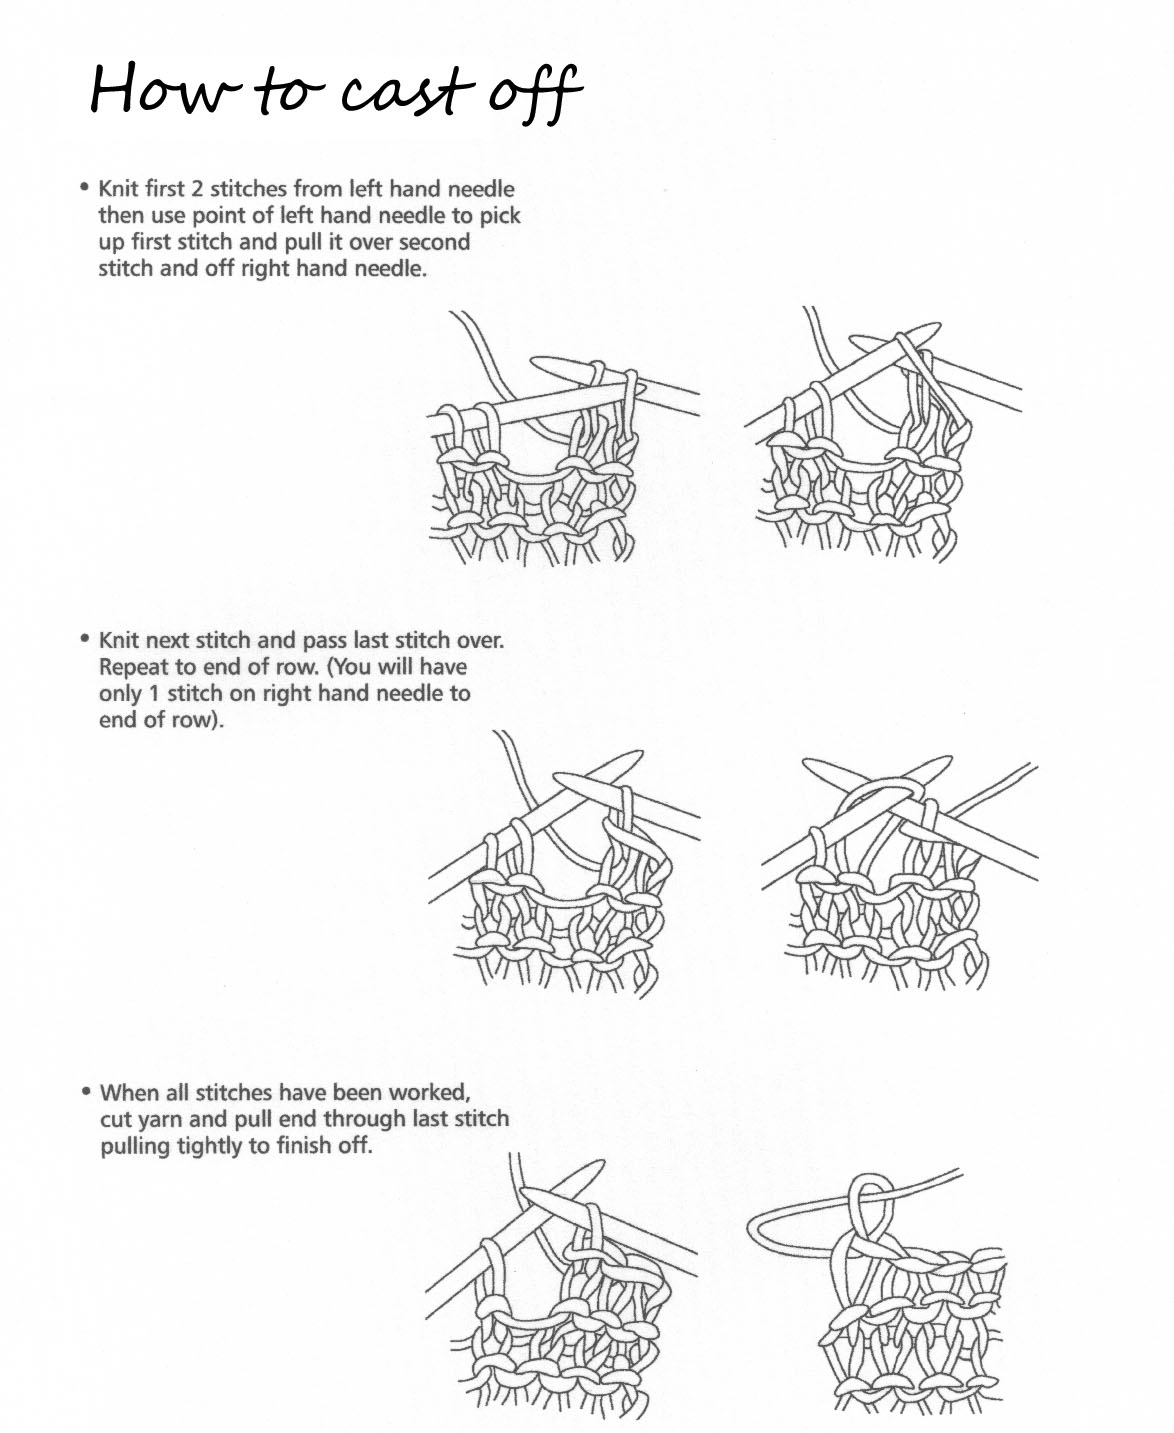 Knitting Casting Off Purl Stitch : HOW TO KNIT.